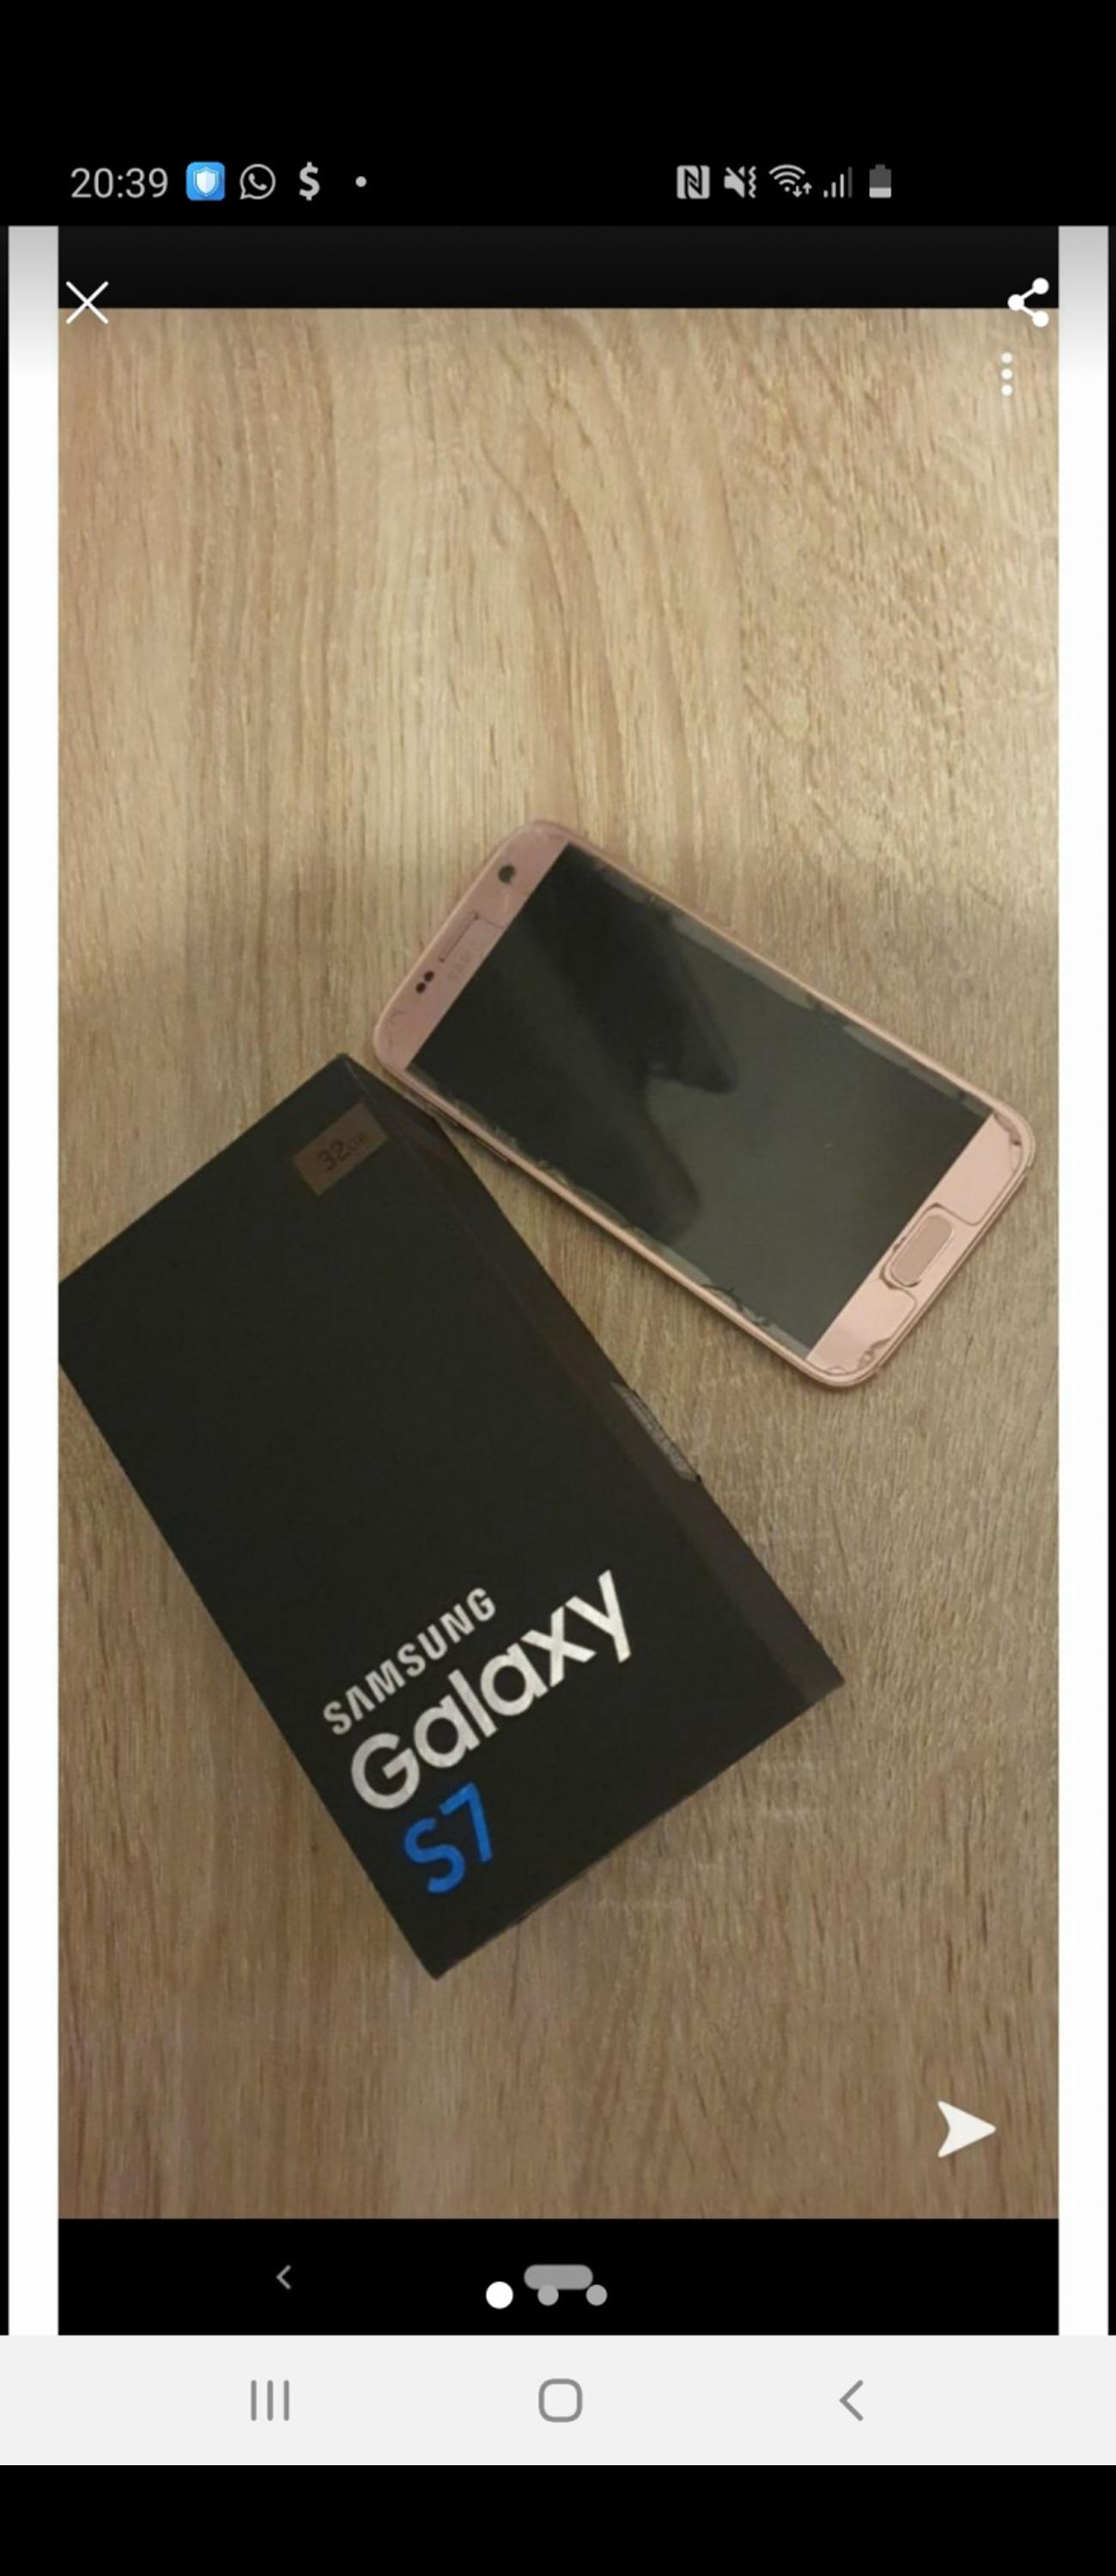 Samsung s7 32gb rose gold mint condition unlocked boxed only no charger got a silver sim tray but doesn't affect anything